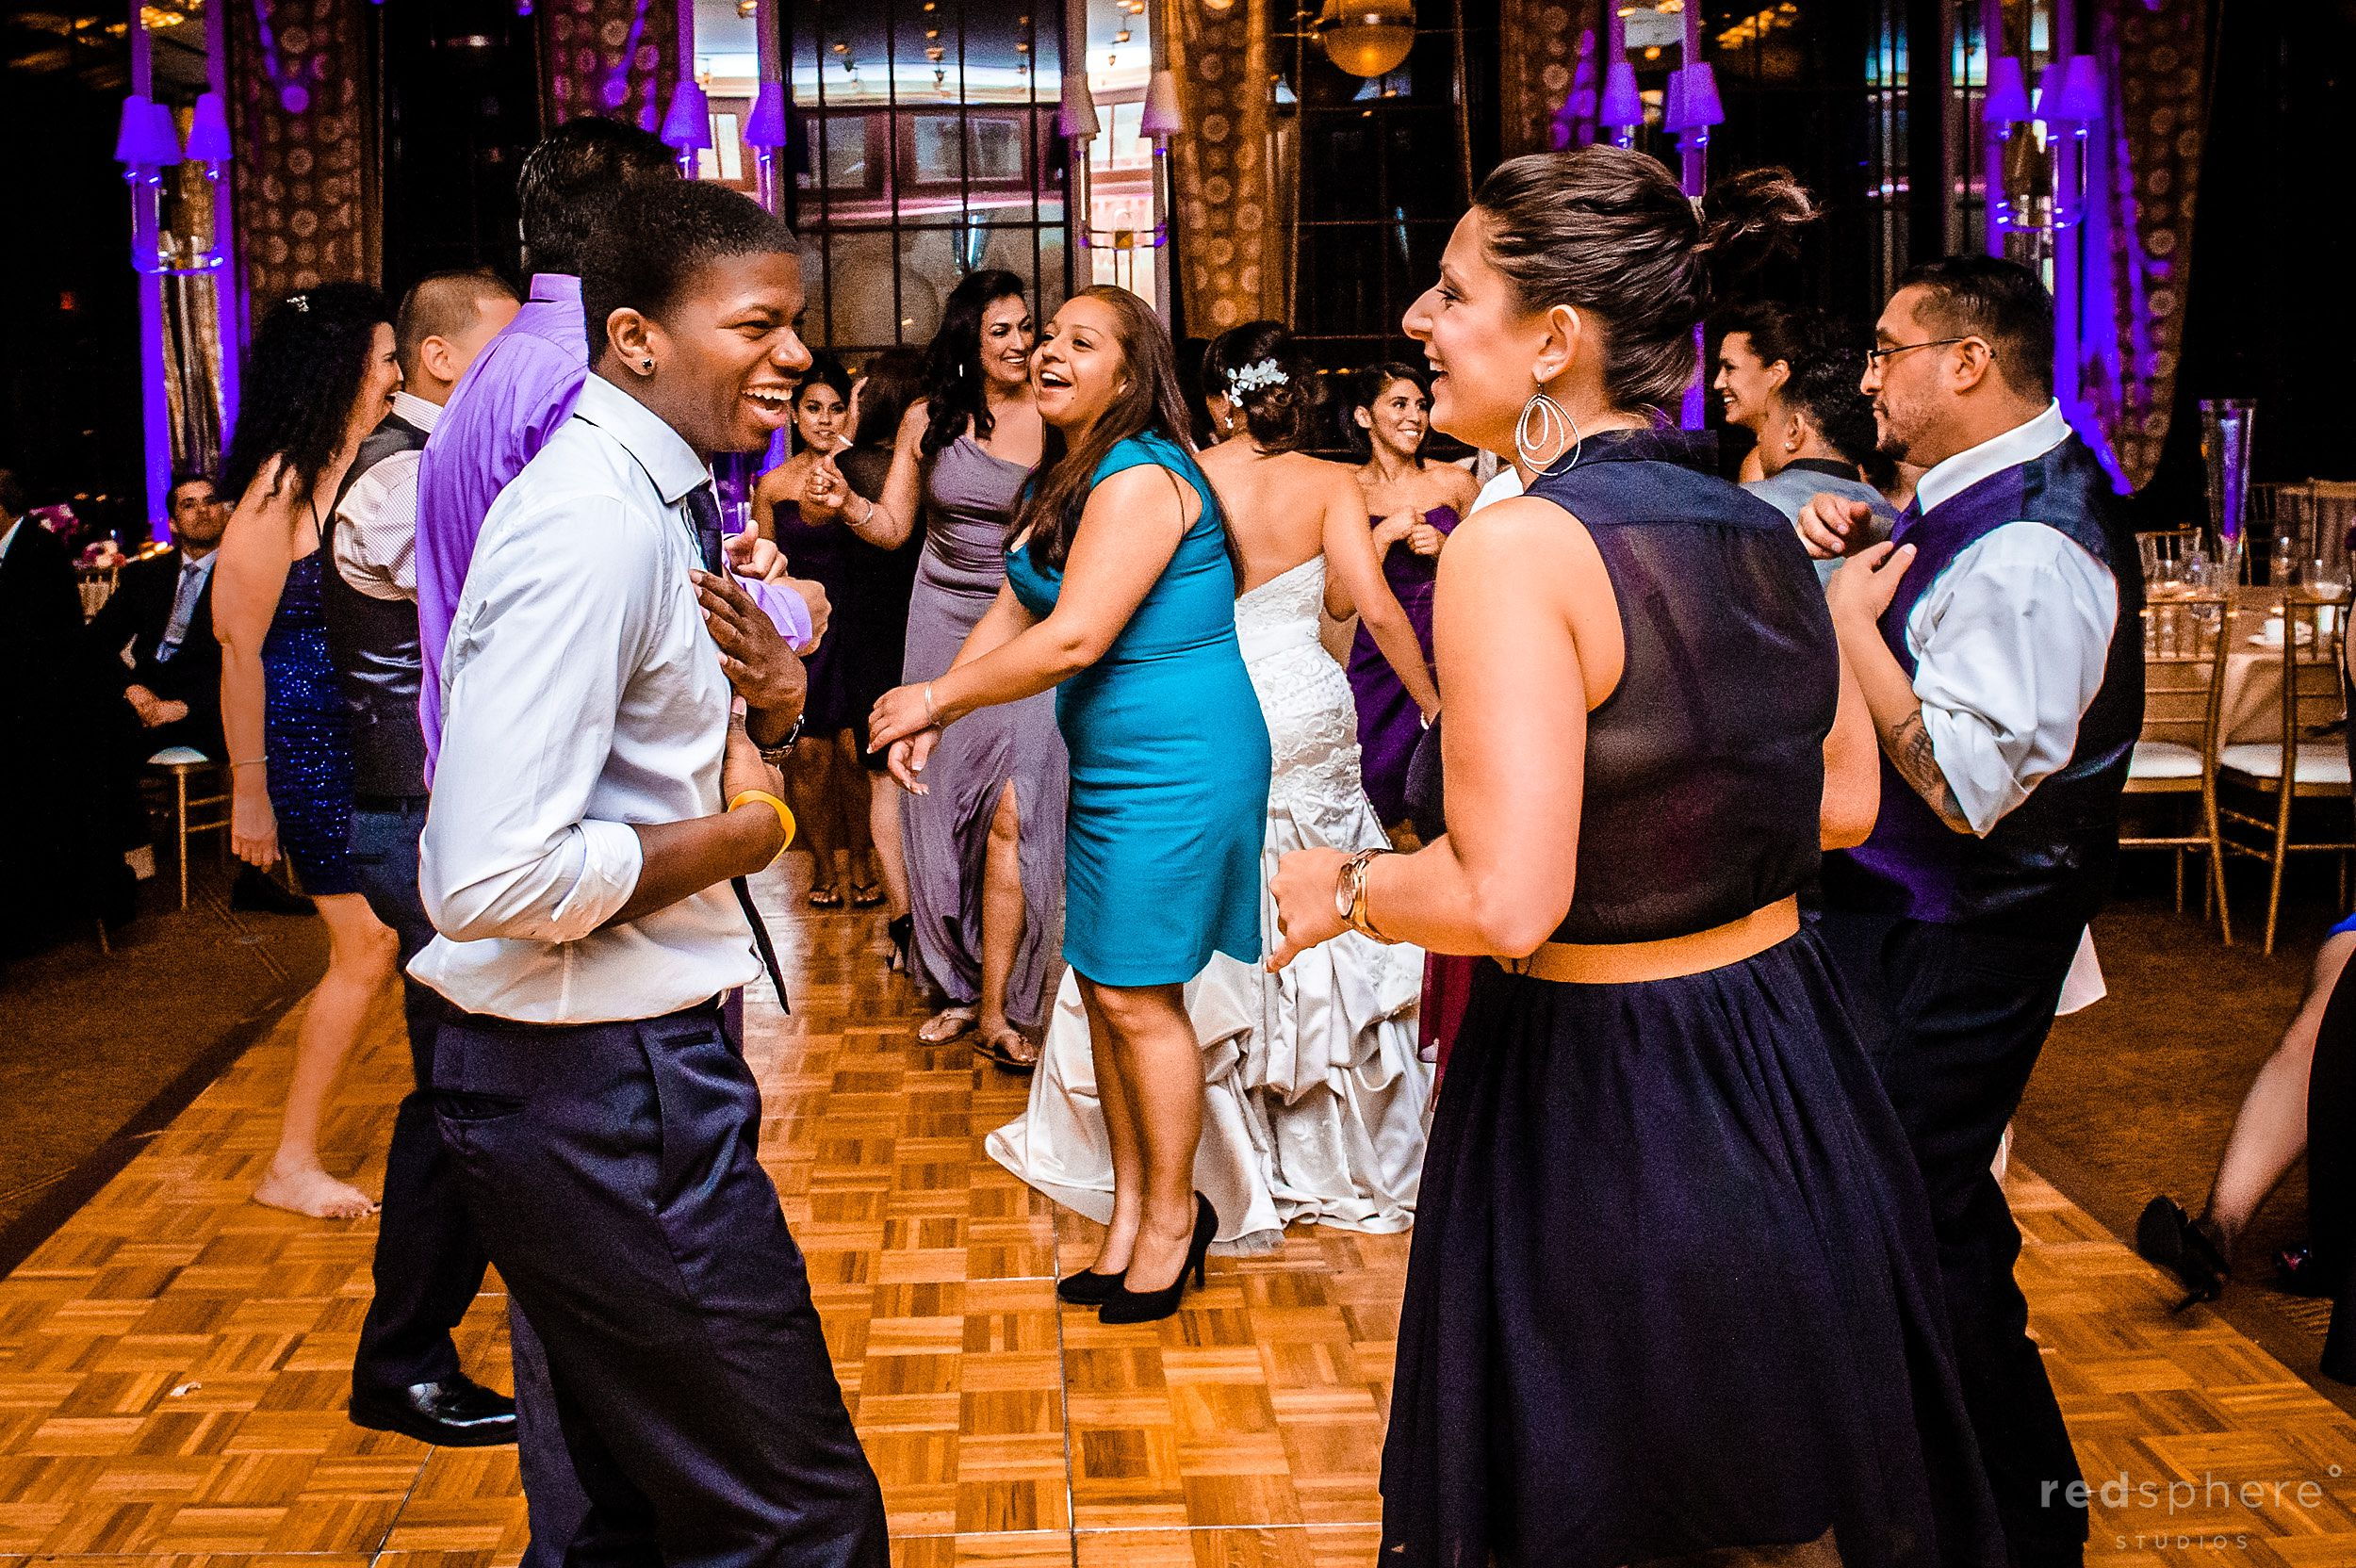 Guests Dancing and Celebrating at Westin St. Francis San Francisco